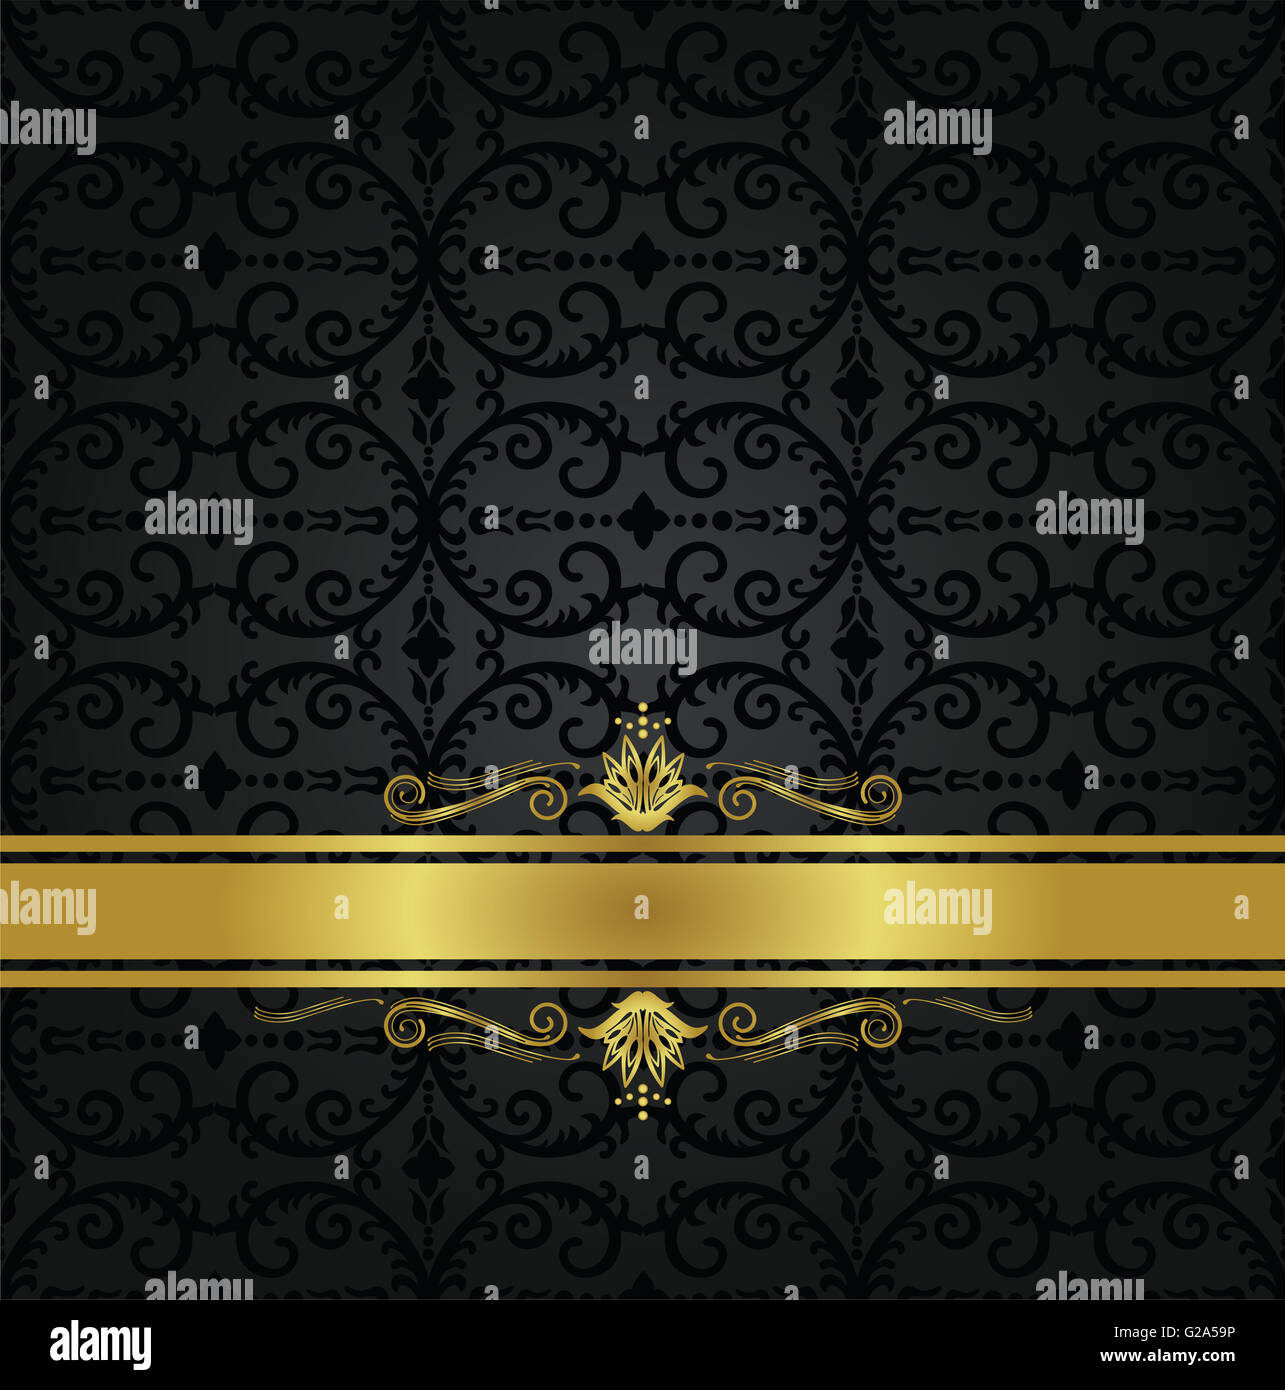 Seamless Black Floral Wallpaper Pattern And Gold Ribbon With Stock